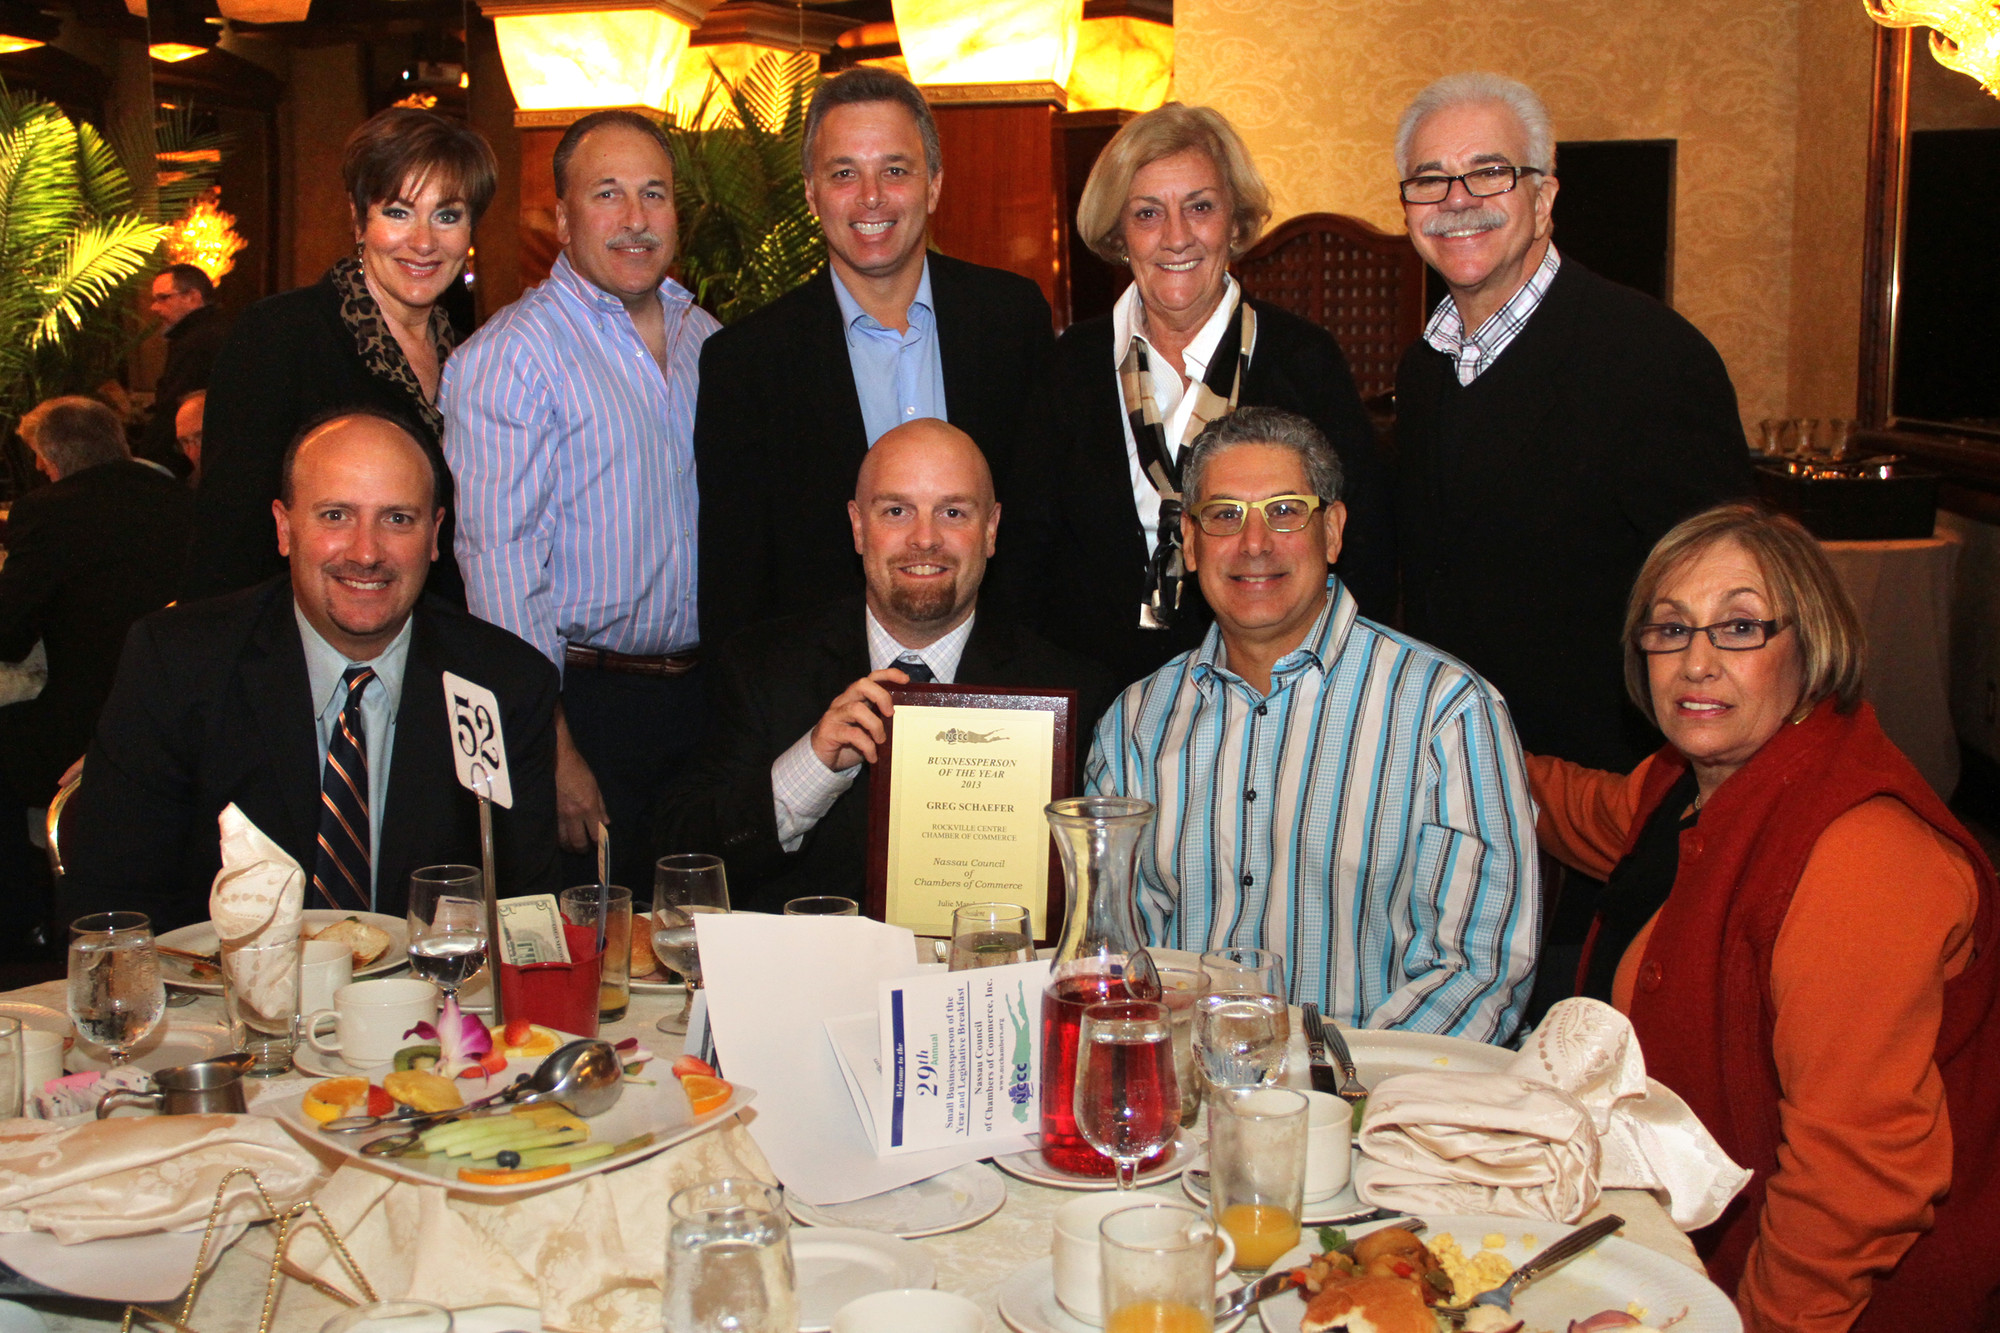 Greg Schaefer, center, with friends and colleagues from the Rockville Centre Chamber.